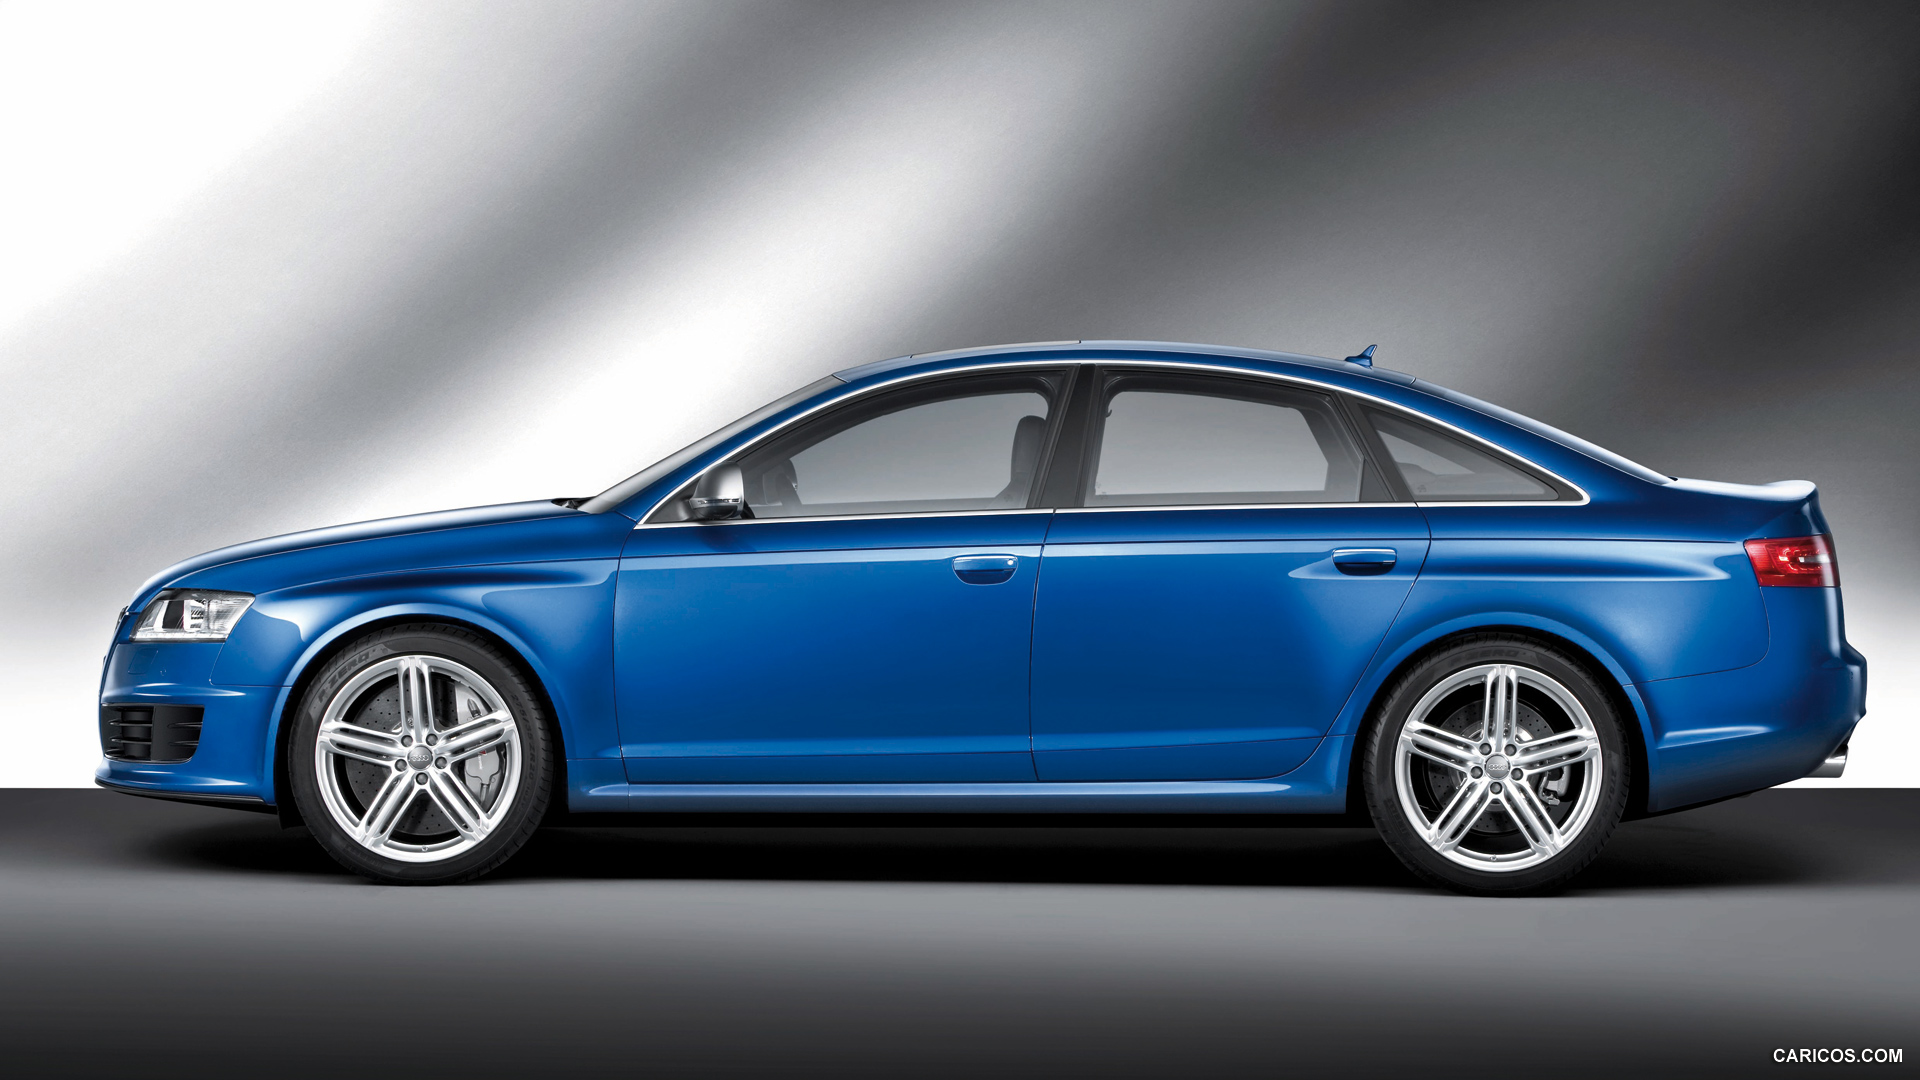 2009 Audi RS6 Sedan Blue - Side | HD Wallpaper #5